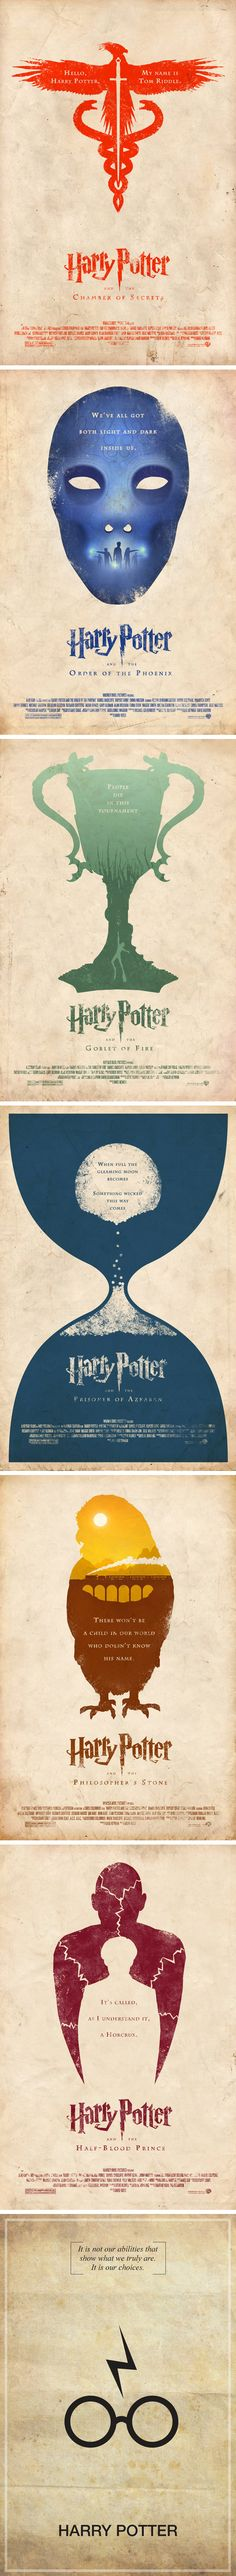 Alternate Harry Potter movie posters.